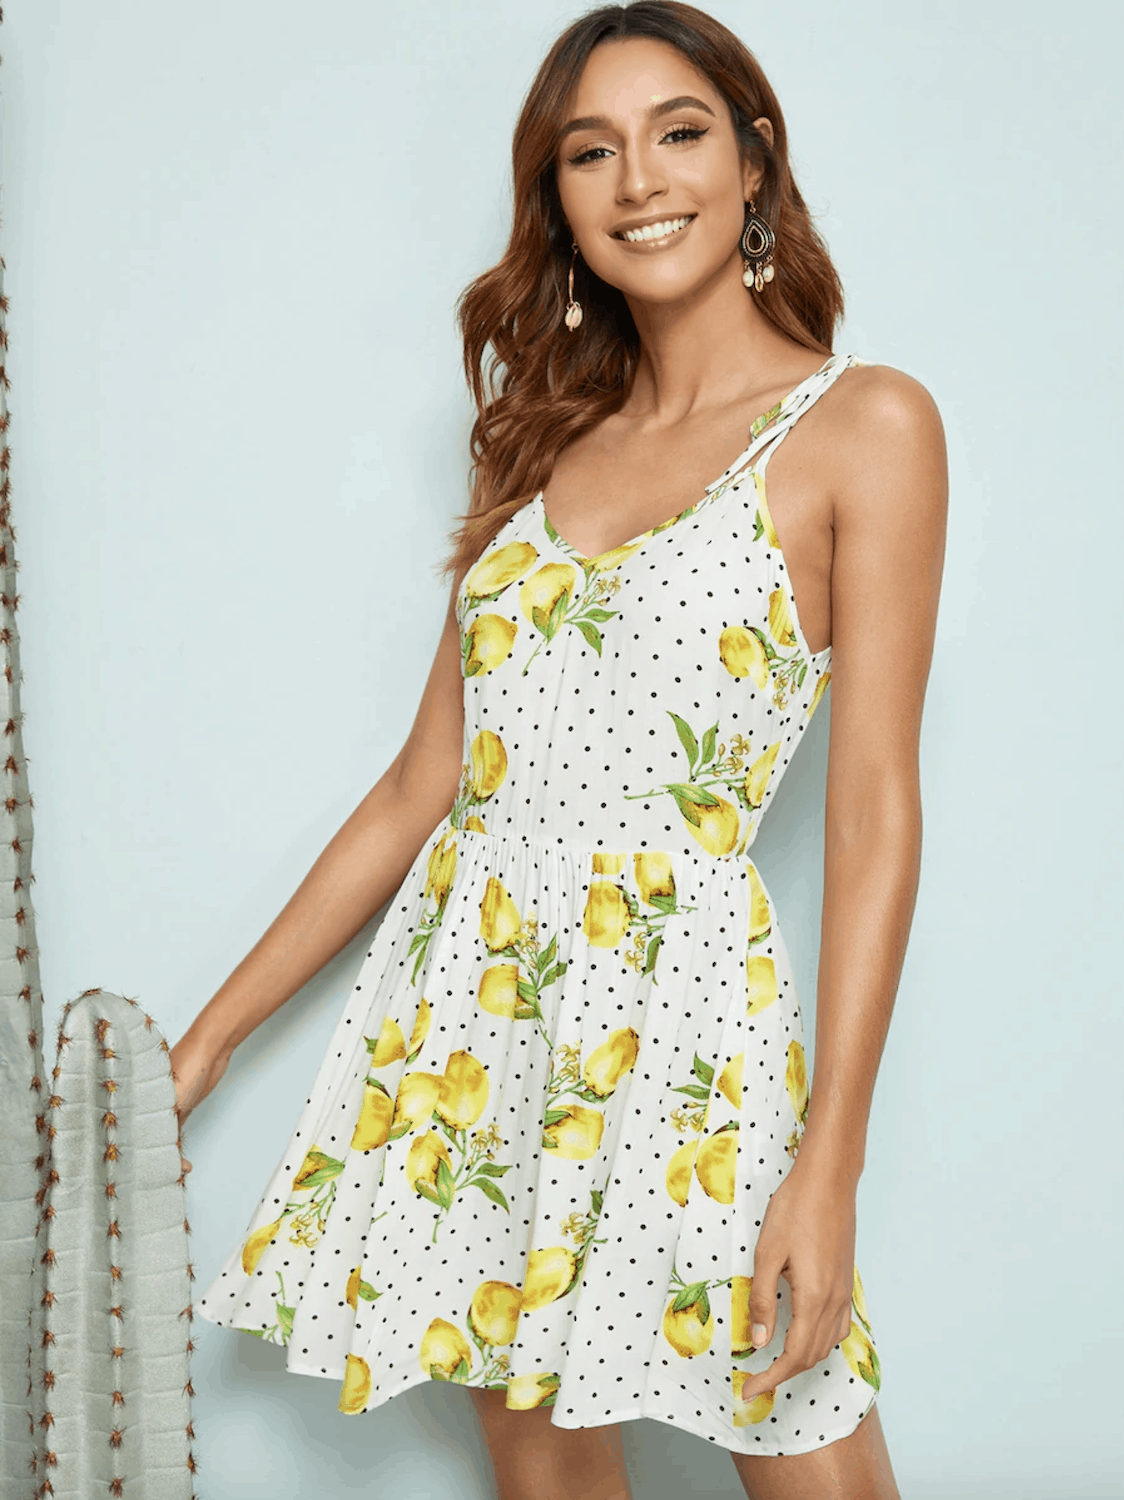 Gorgeous Summer Honeymoon Outfit SHEIN Lemon And Dot Print Self Tie Shoulder Dress